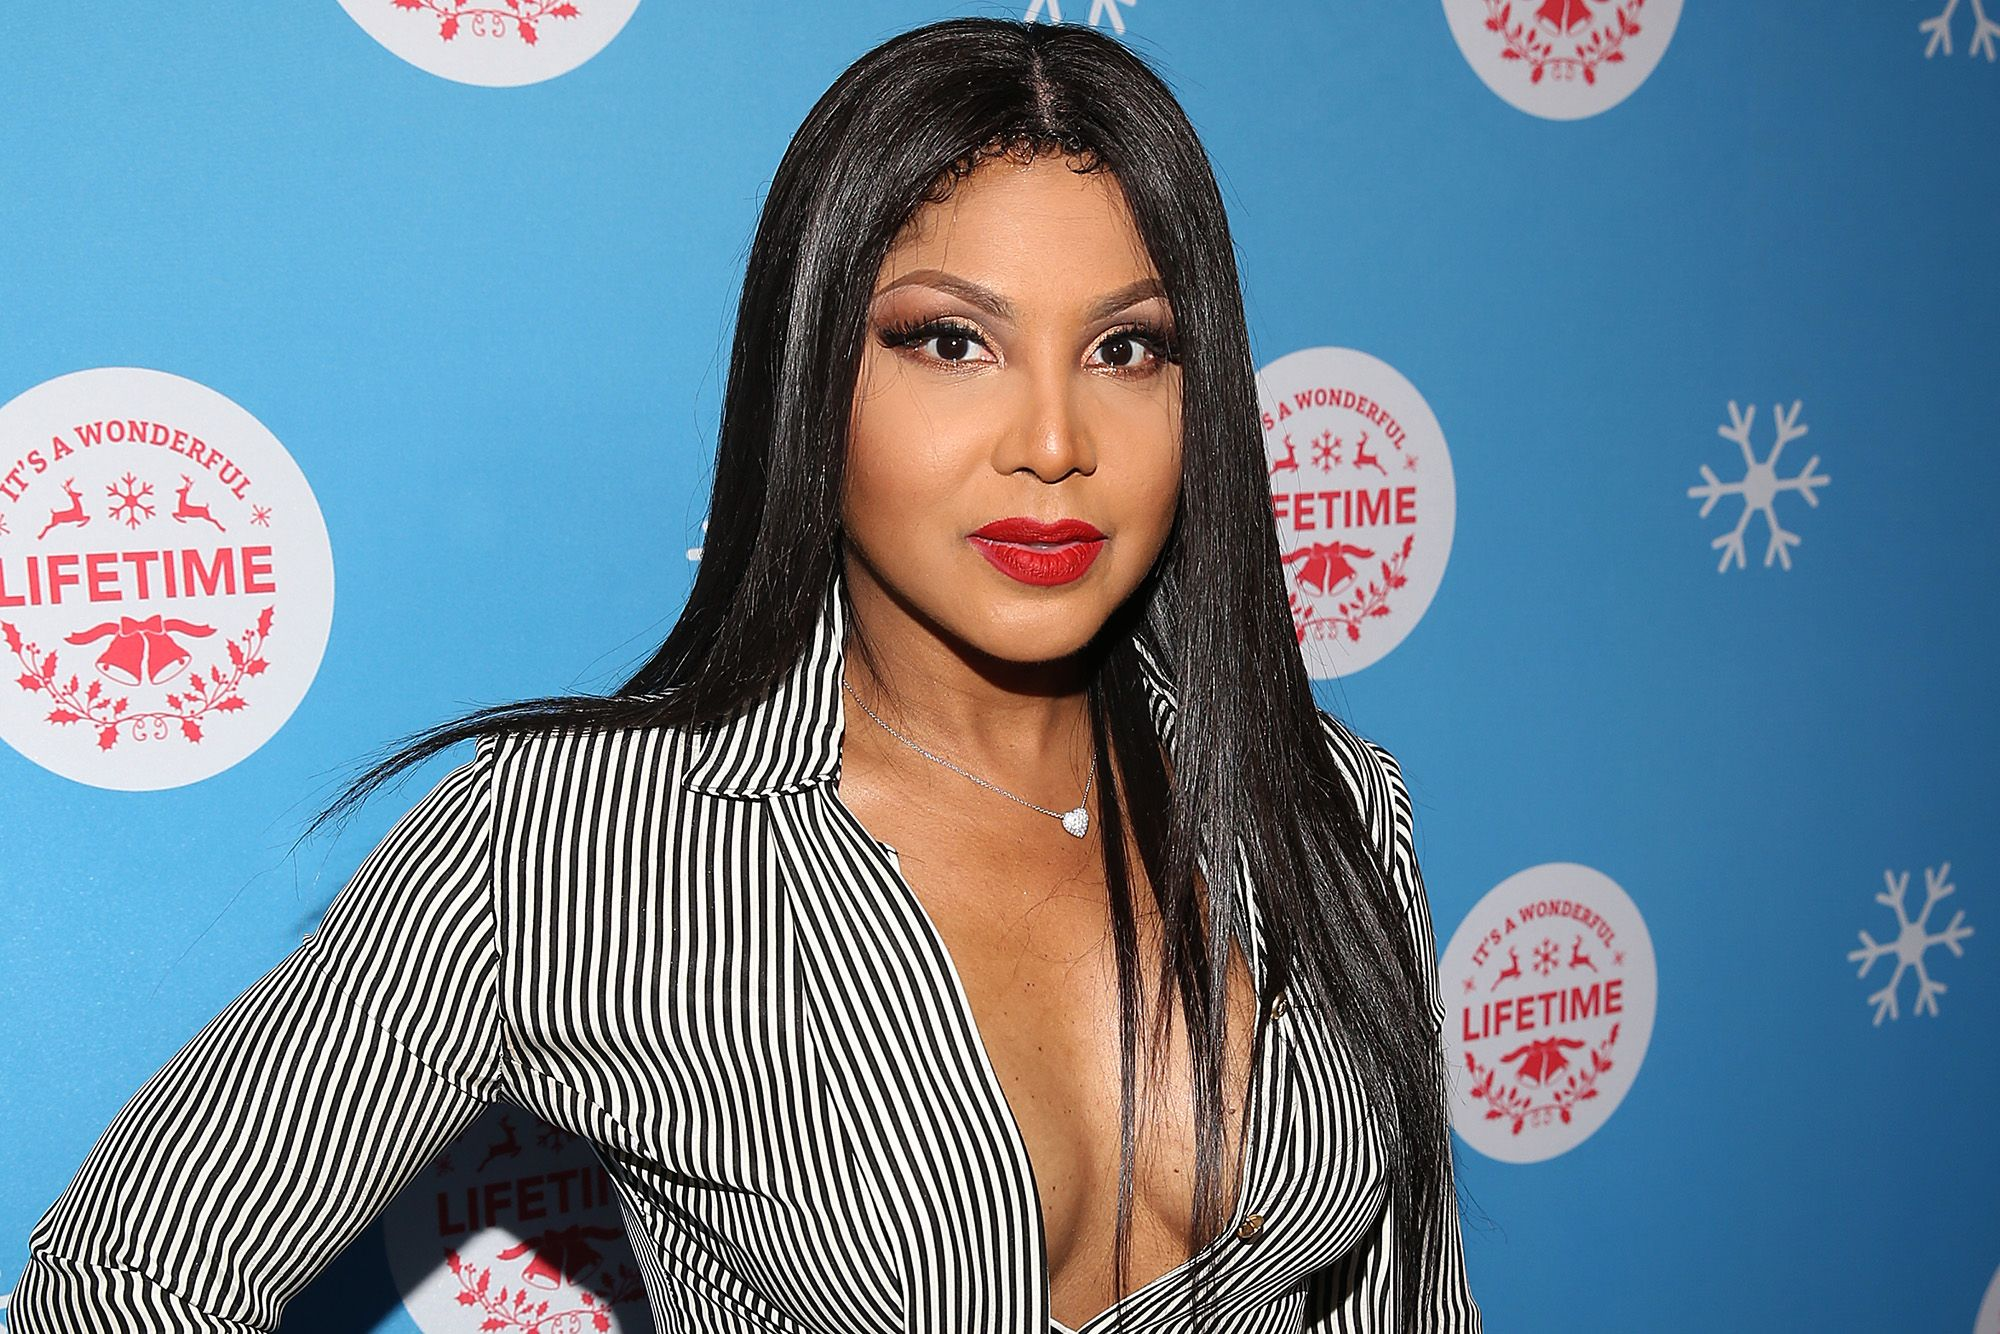 Toni Braxton's Latest Video For Her New Music Has Fans In Awe - See New Images Here!